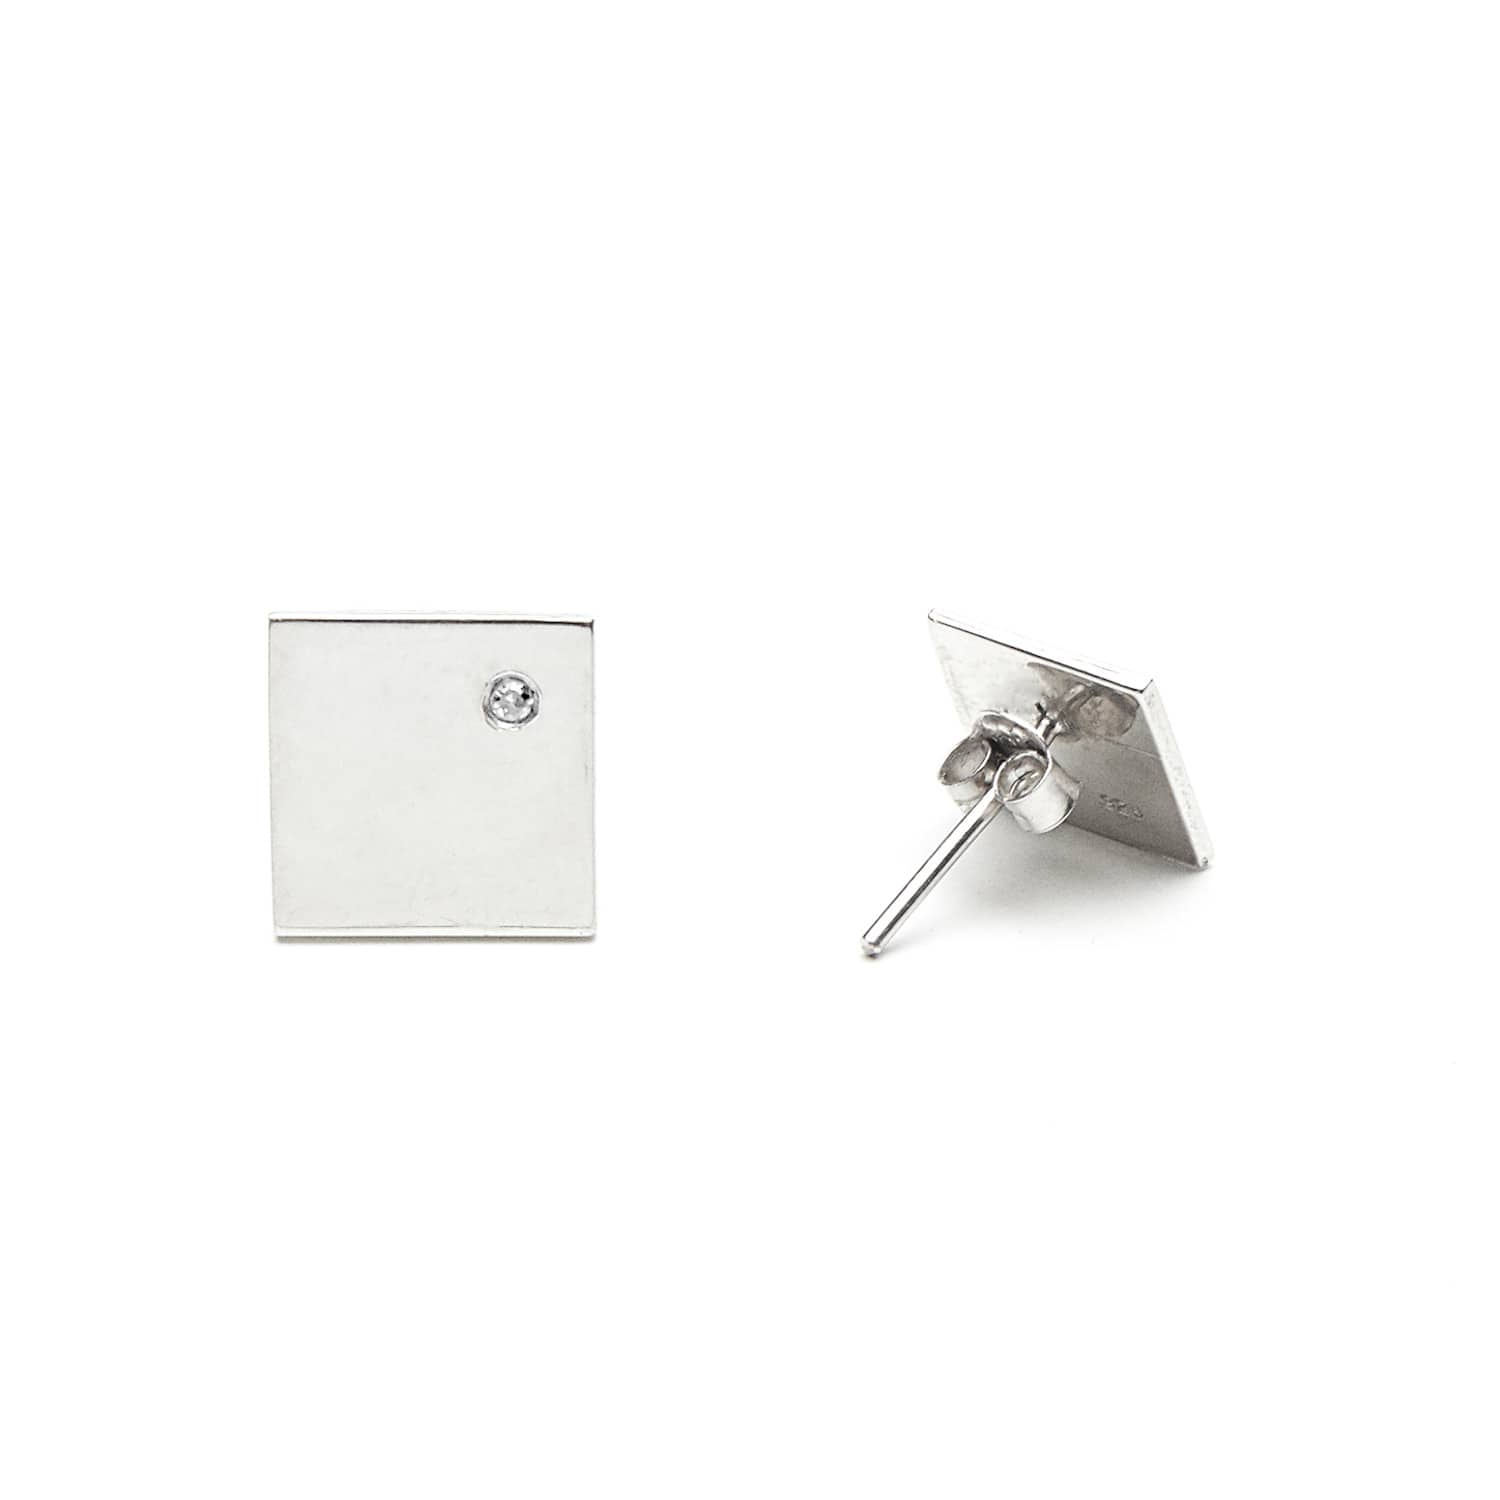 425d969ac Silver Square Studs   MSJ by Mira S Designs   Wolf & Badger